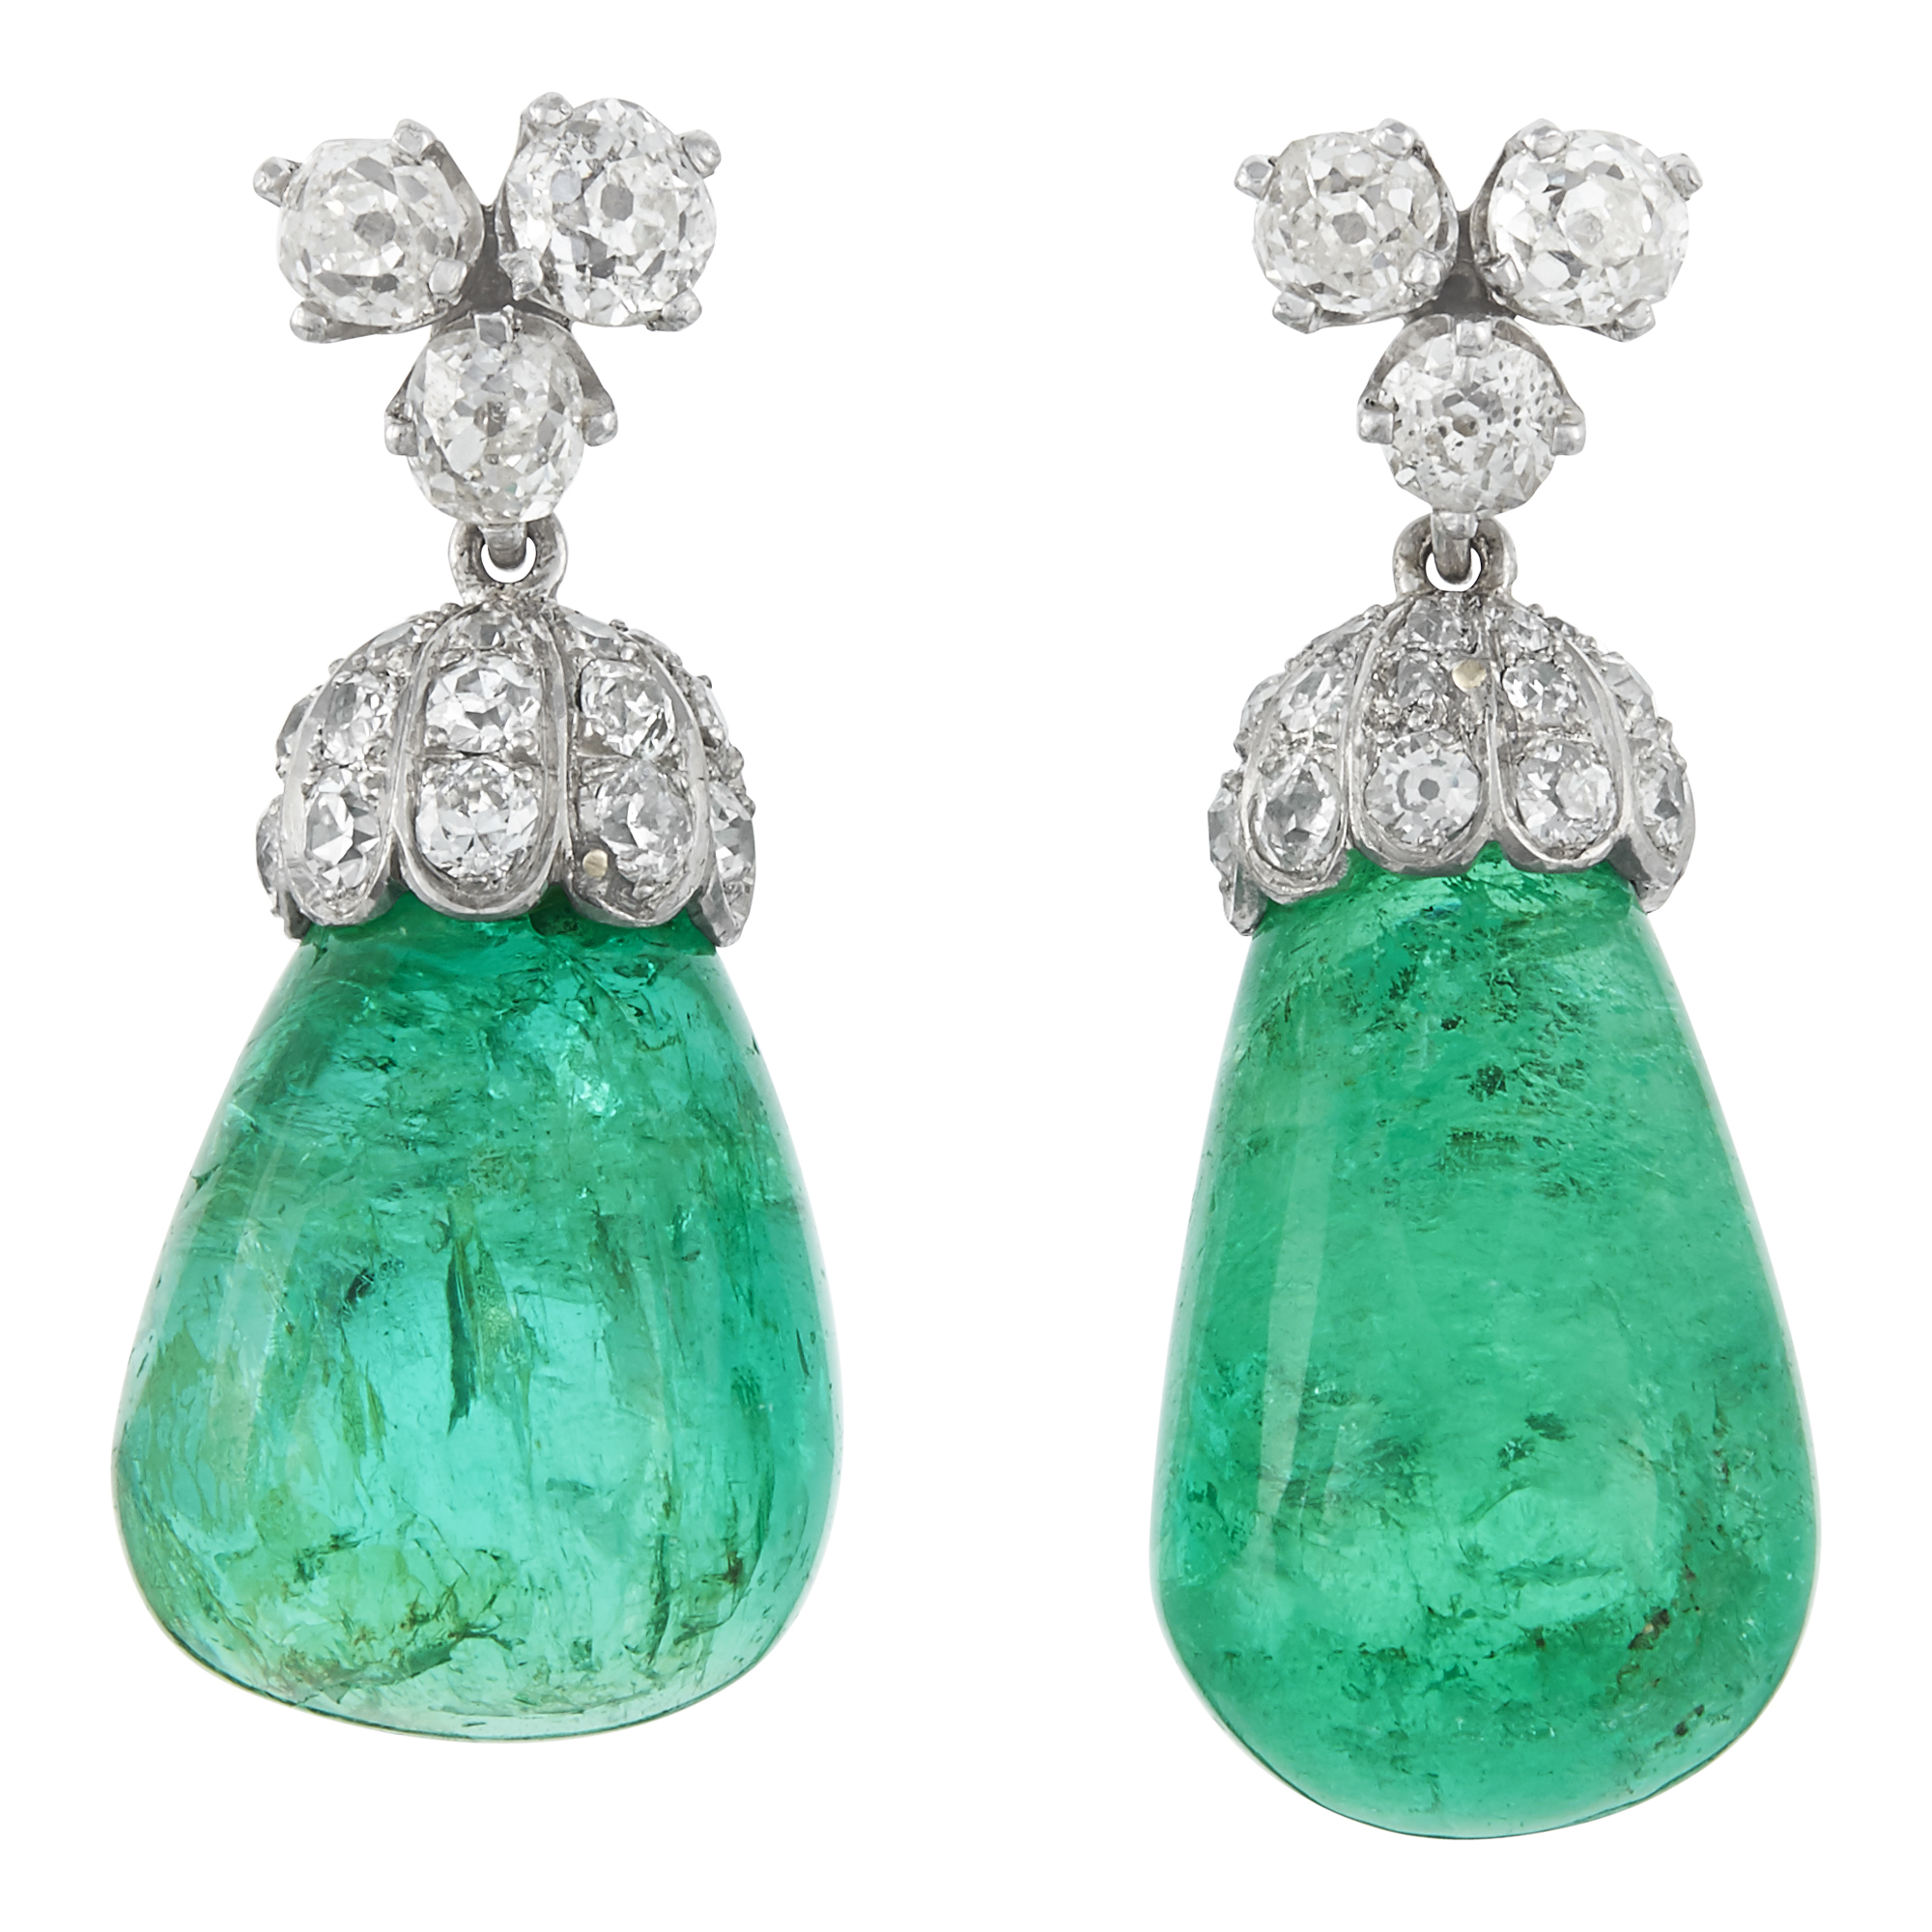 Lot image - Pair of Platinum, White Gold, Diamond and Emerald Pendant Earrings